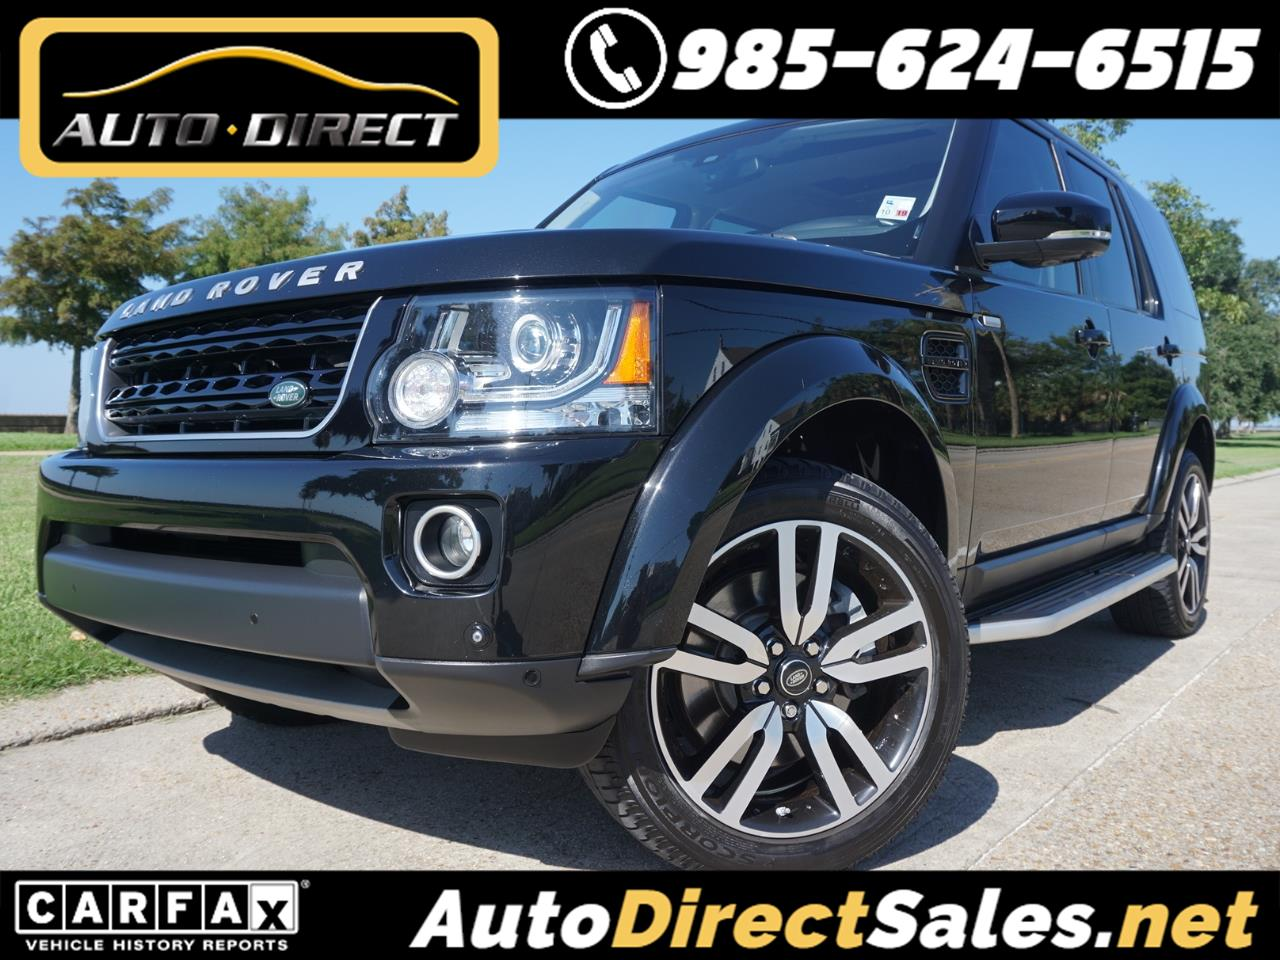 Land Rover LR4 4WD 4dr HSE LUX Landmark Edition 2016